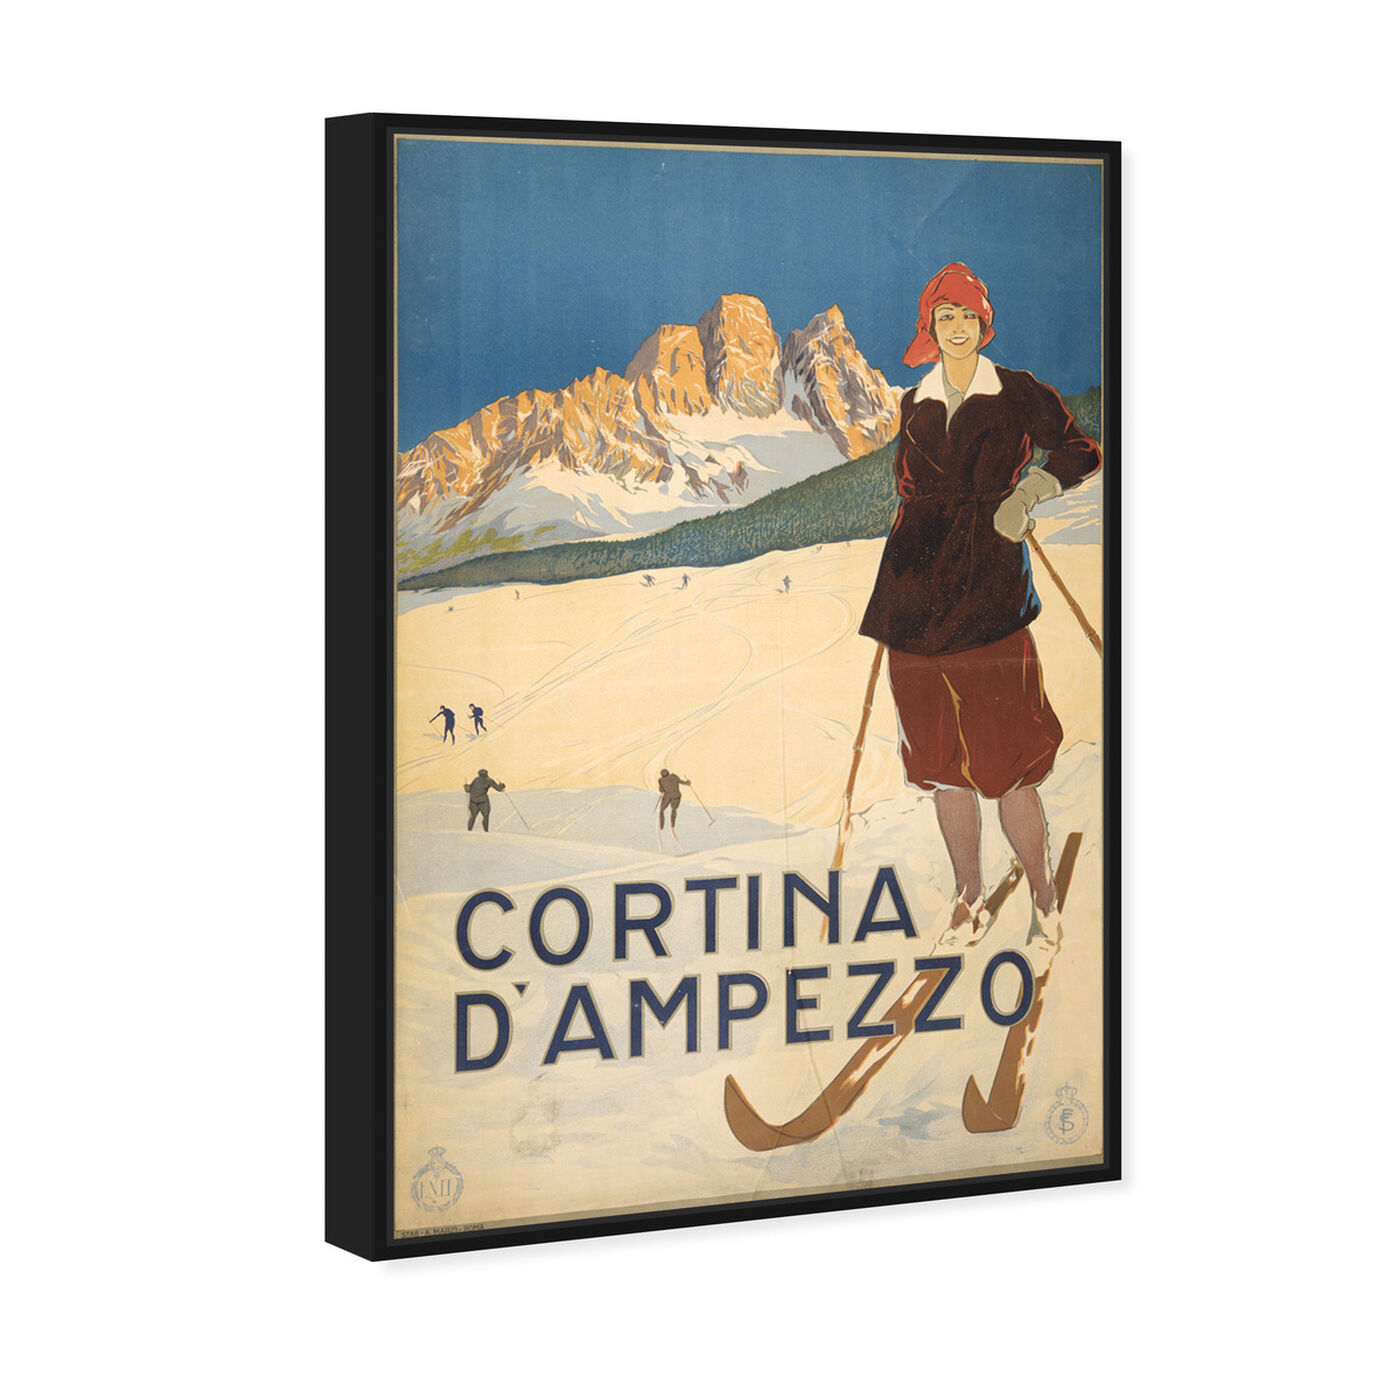 Angled view of Cortina D'Ampezzo featuring sports and teams and skiing art.